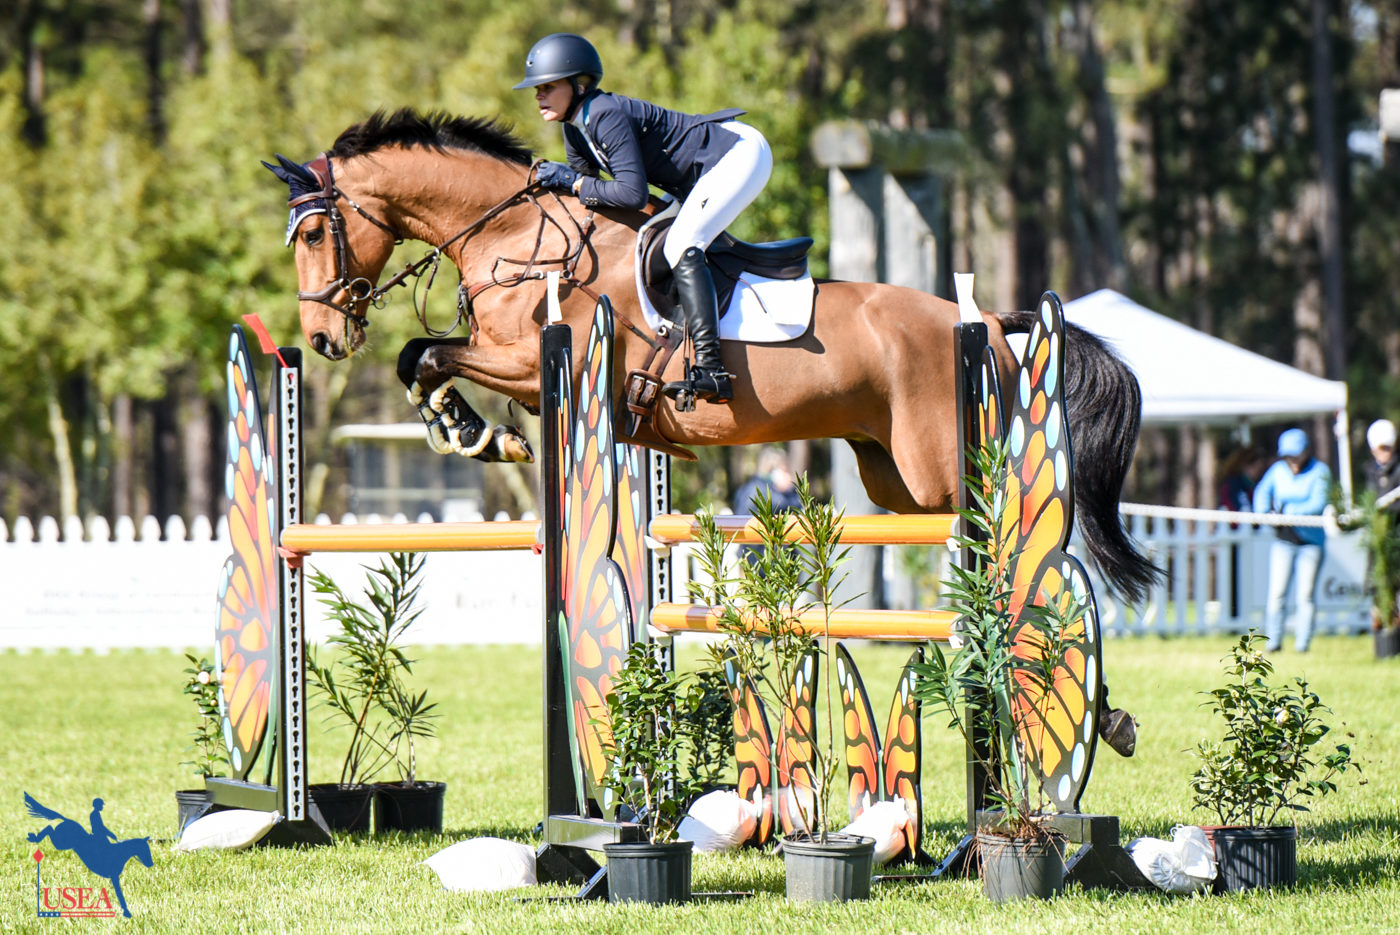 3* - 6th - Alyssa Phillips and Oskar